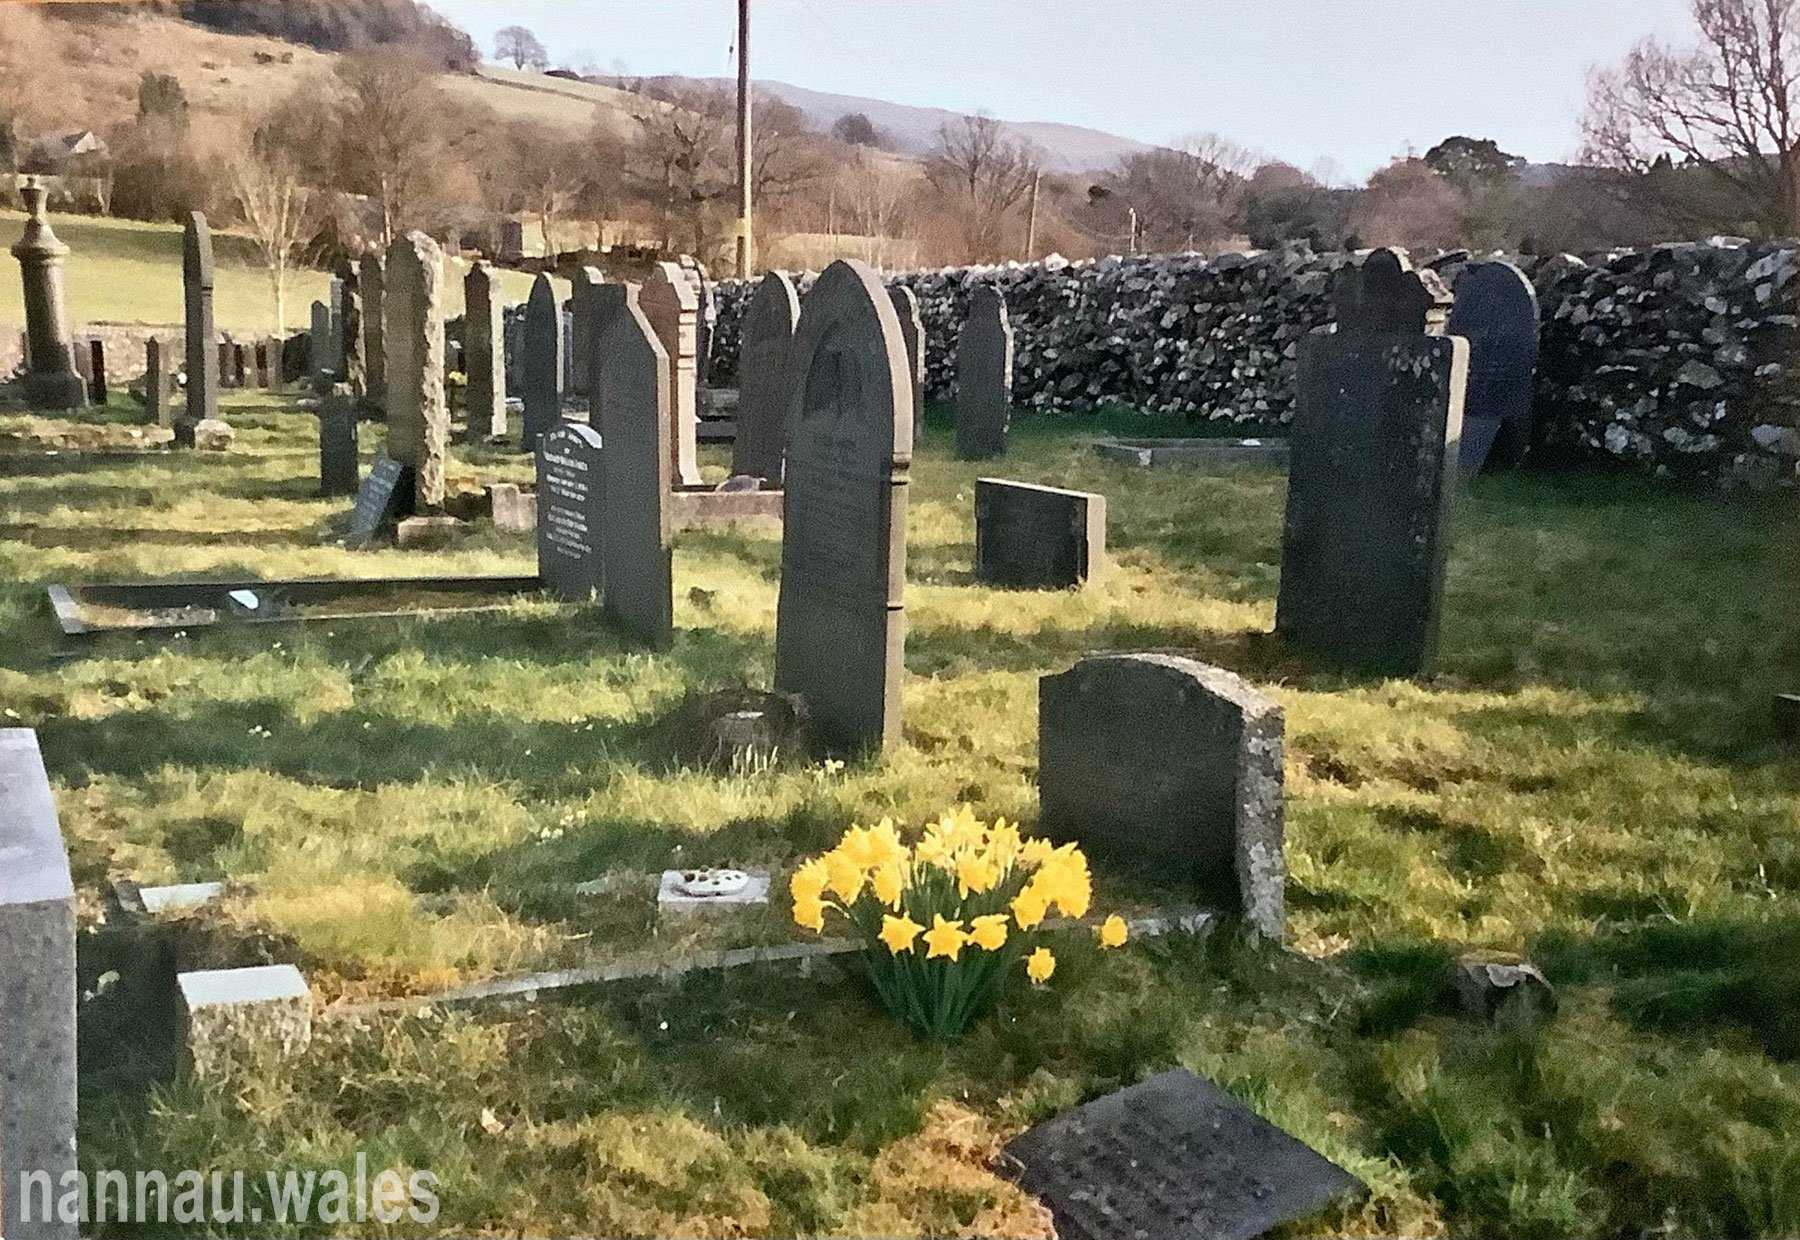 Sylvanus Jones Owen's grave (the small headstone directly behind the daffodils) in Capel Newydd cemetery Brithdir. The headstone does mention his connection to Nannau. His father and mother are in the next grave along. Image courtesy of Bryan Panter.